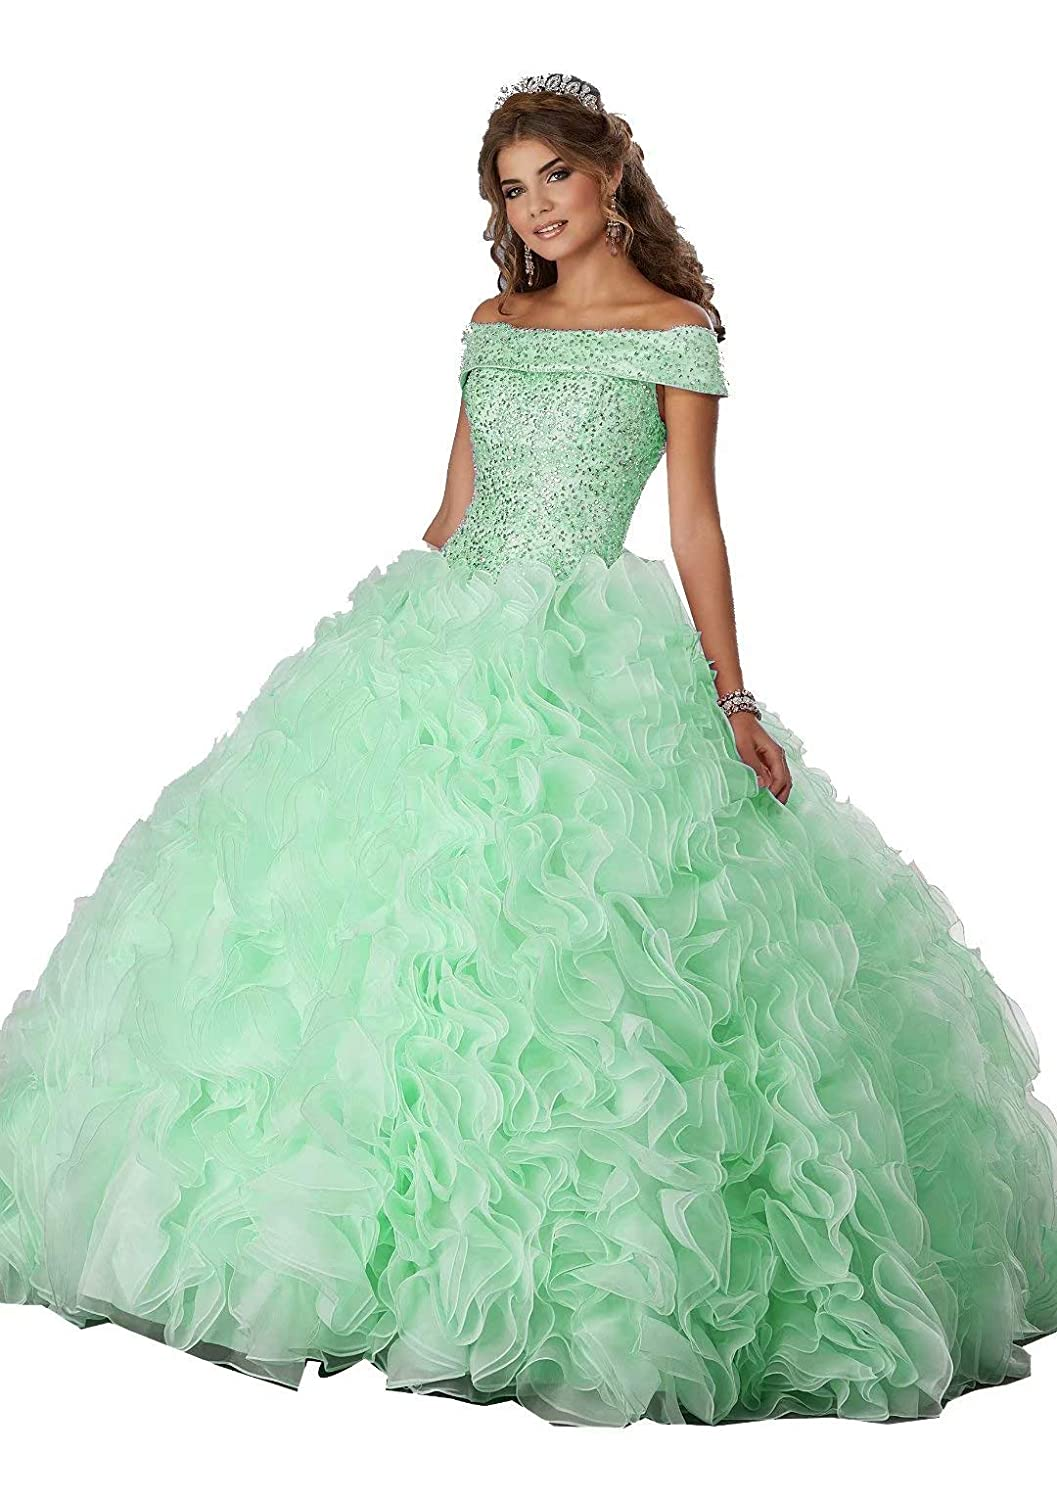 color 16 Unions Women's Off Shoulder Crystal Beaded Ball Gown Quinceanera Dresses Pageant Evening Wedding Dress